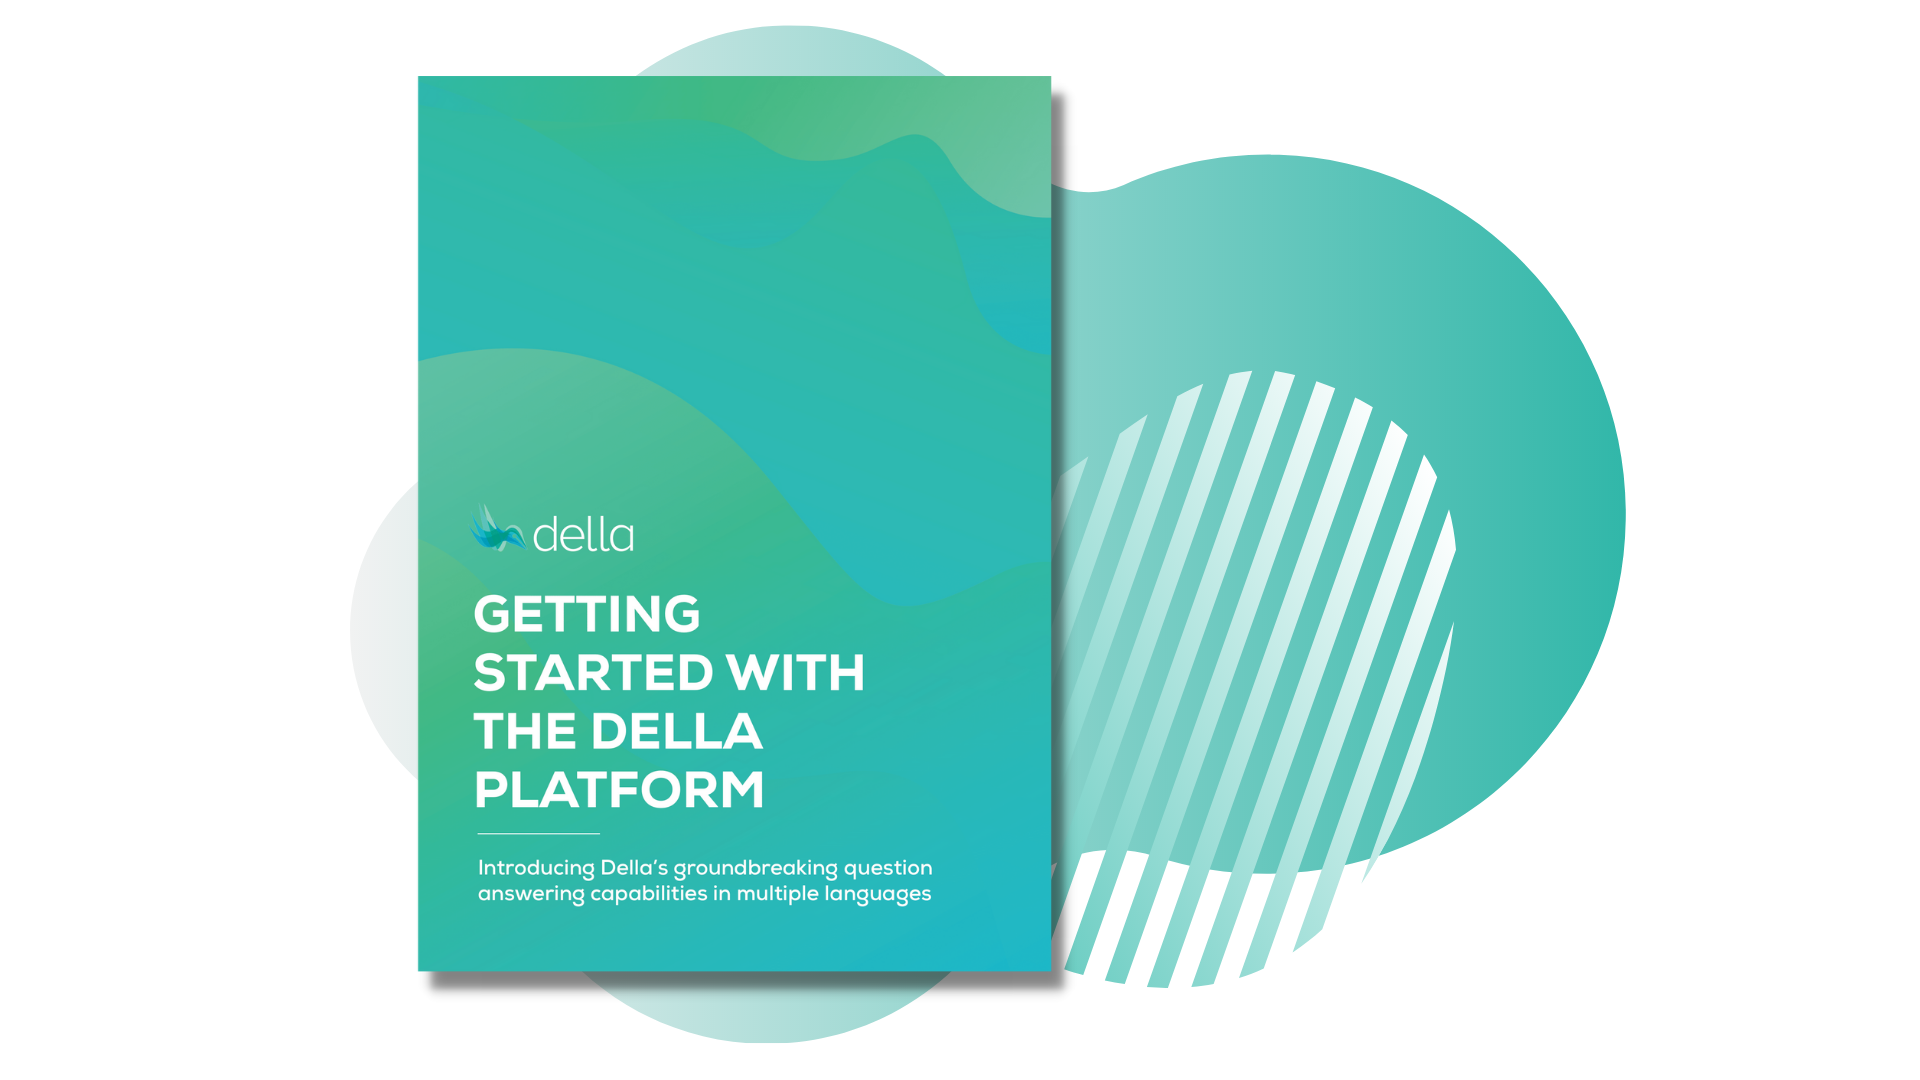 Getting started with the Della Platform